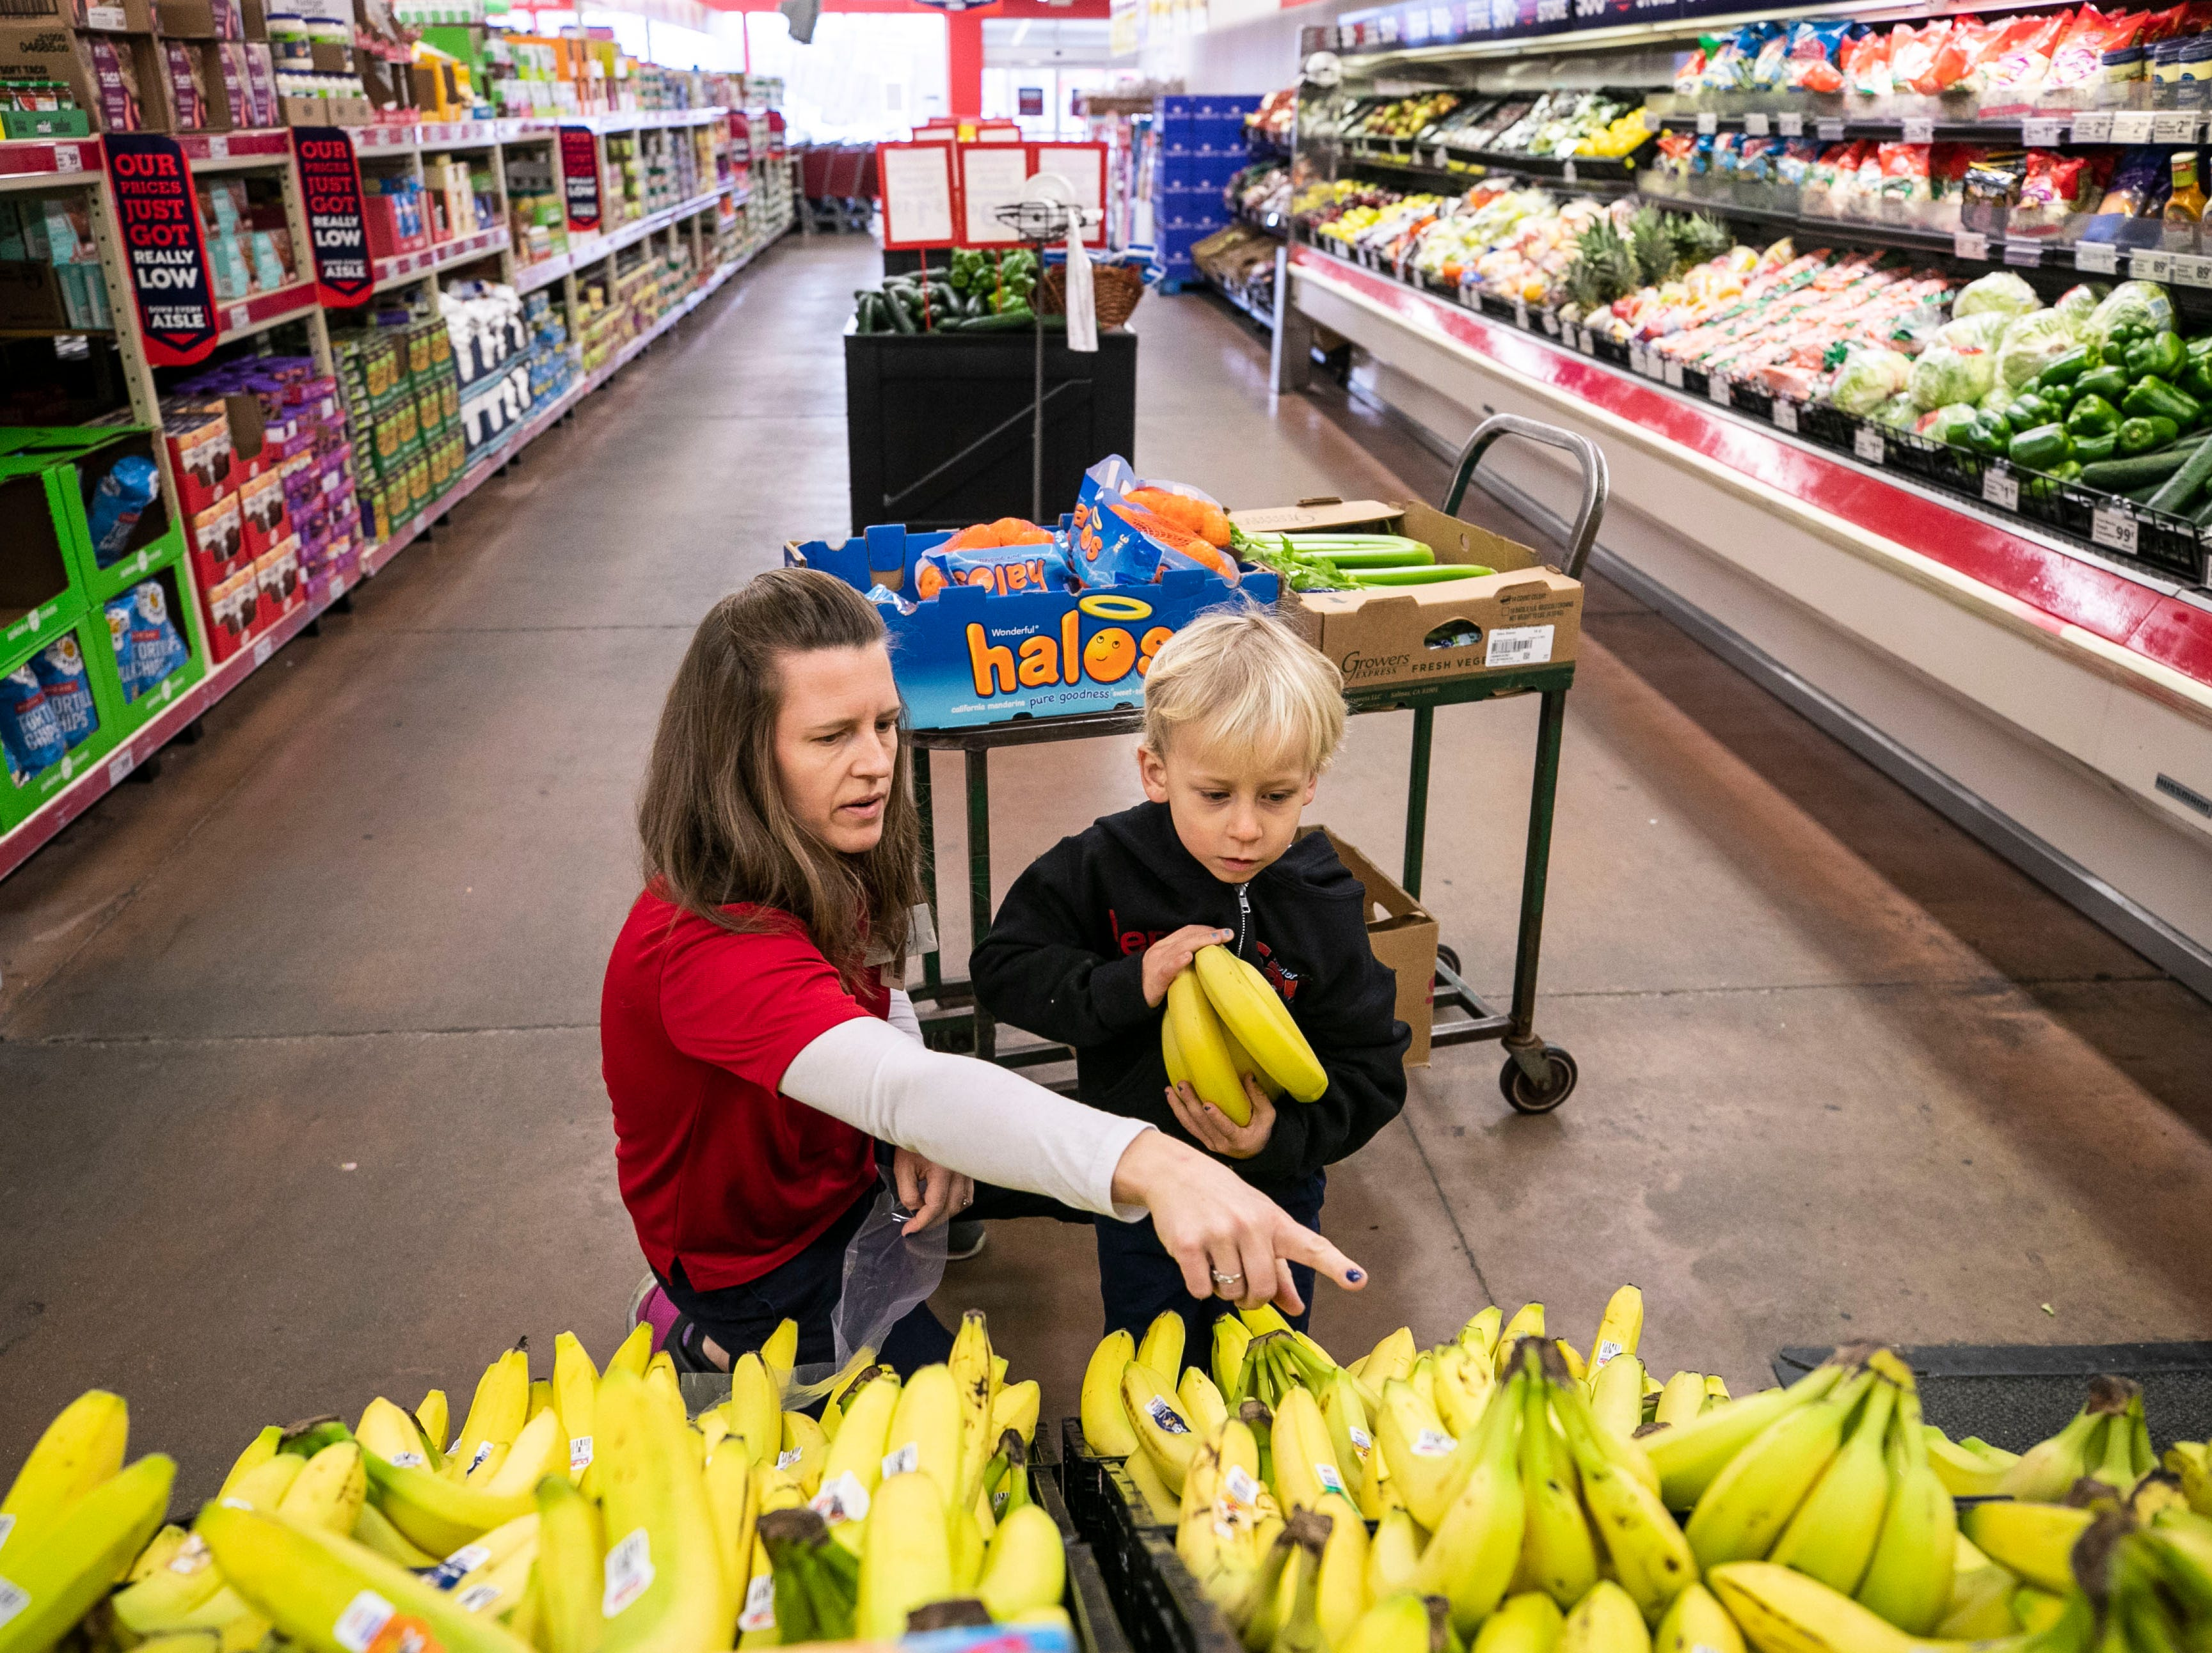 Jenny Kute and four-year-old son Henry put out fresh produce at the family's Save-A-Lot on Taylor Boulevard in the Hazelwood neighborhood of Louisville. Kute and husband Craig Oeswein had tailored the store to offer international foods for its customers as well as farm-to-store produce in the summer months. There is a farm behind the store's back lot that grows vegetables and the owners sell it at the store.